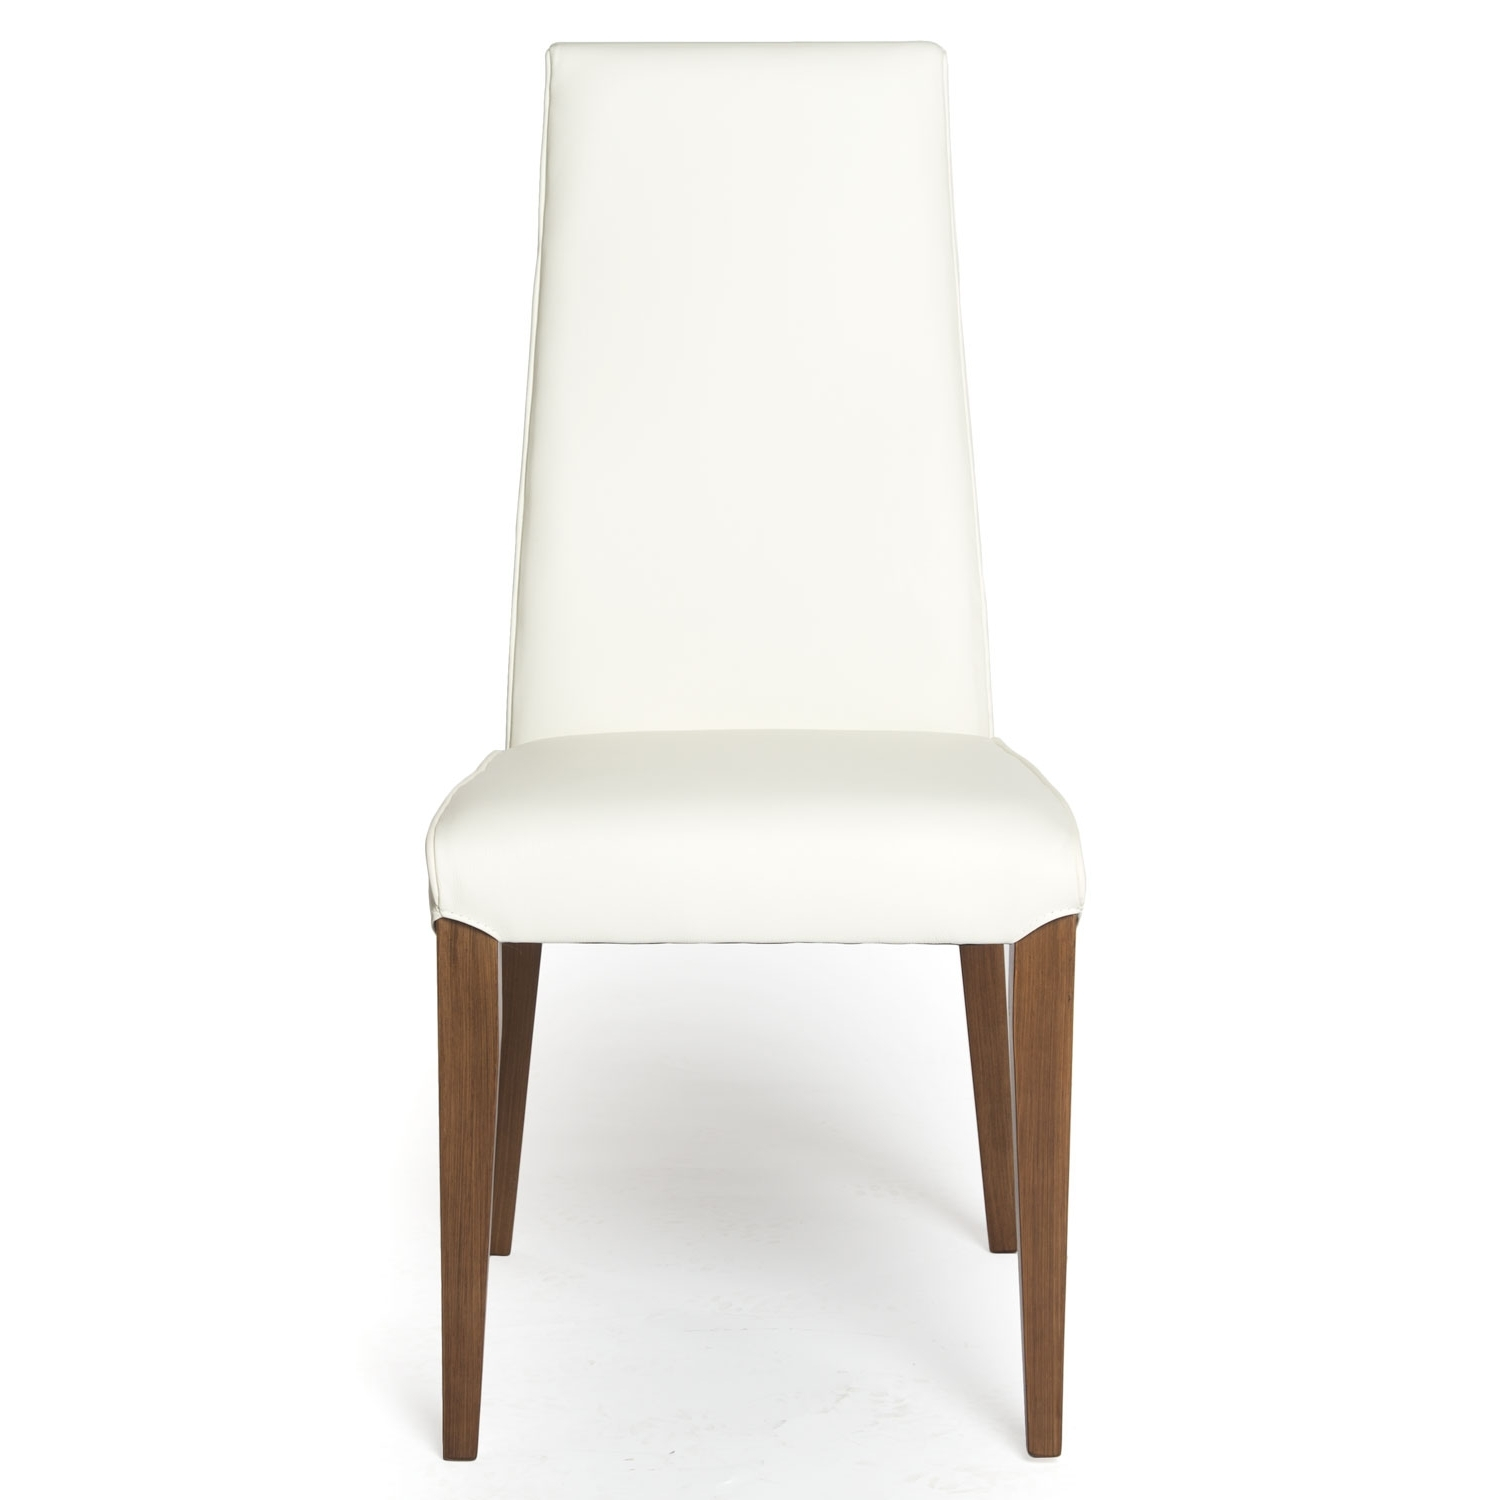 Famous White Leather Dining Chairs Intended For Leather Dining Chair With Wood Legs (View 8 of 25)